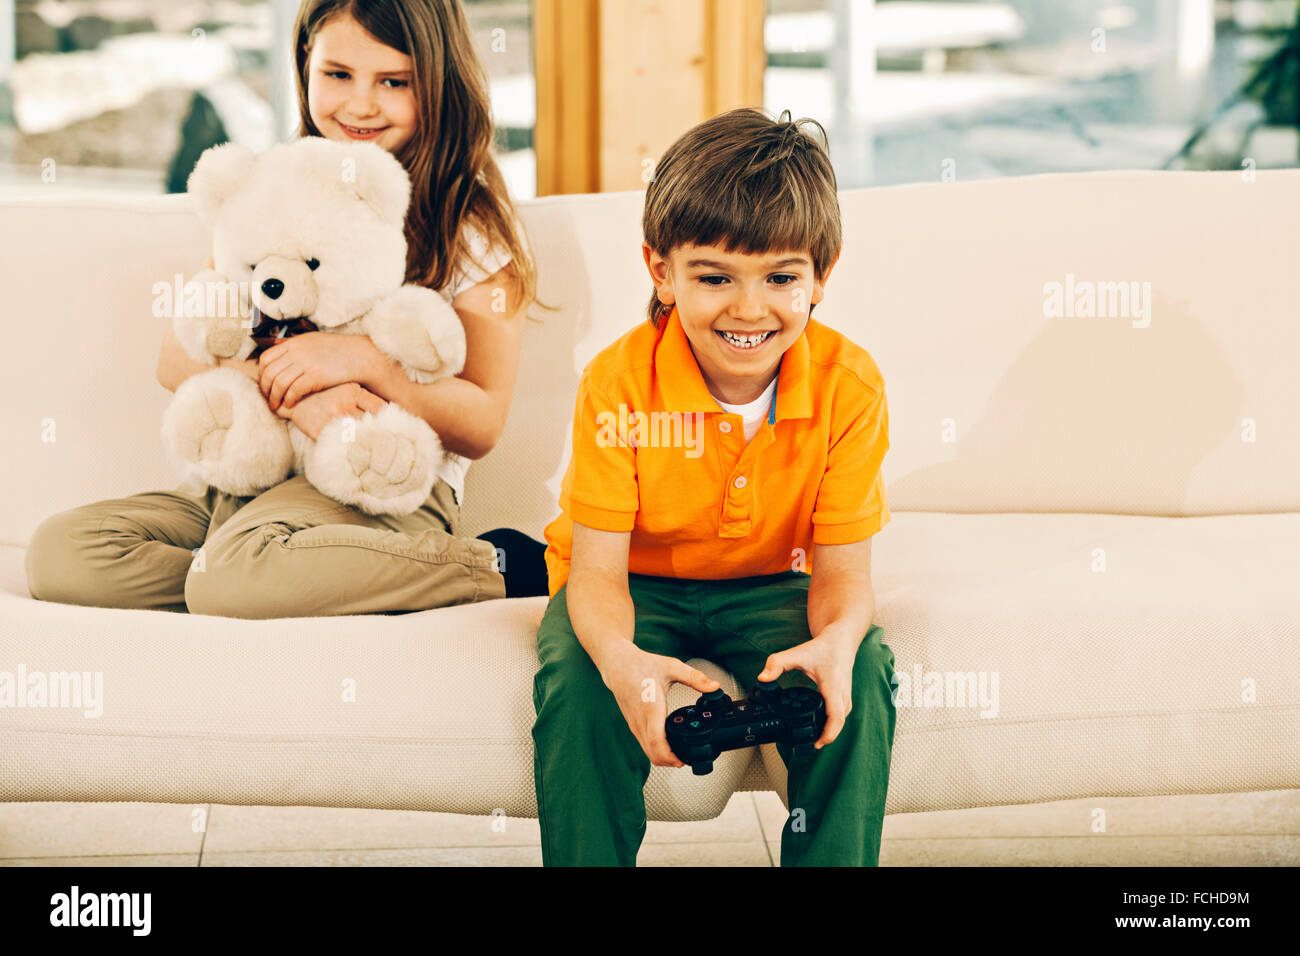 Boy playing video game in living room   sister holding teddy bear - Stock Image